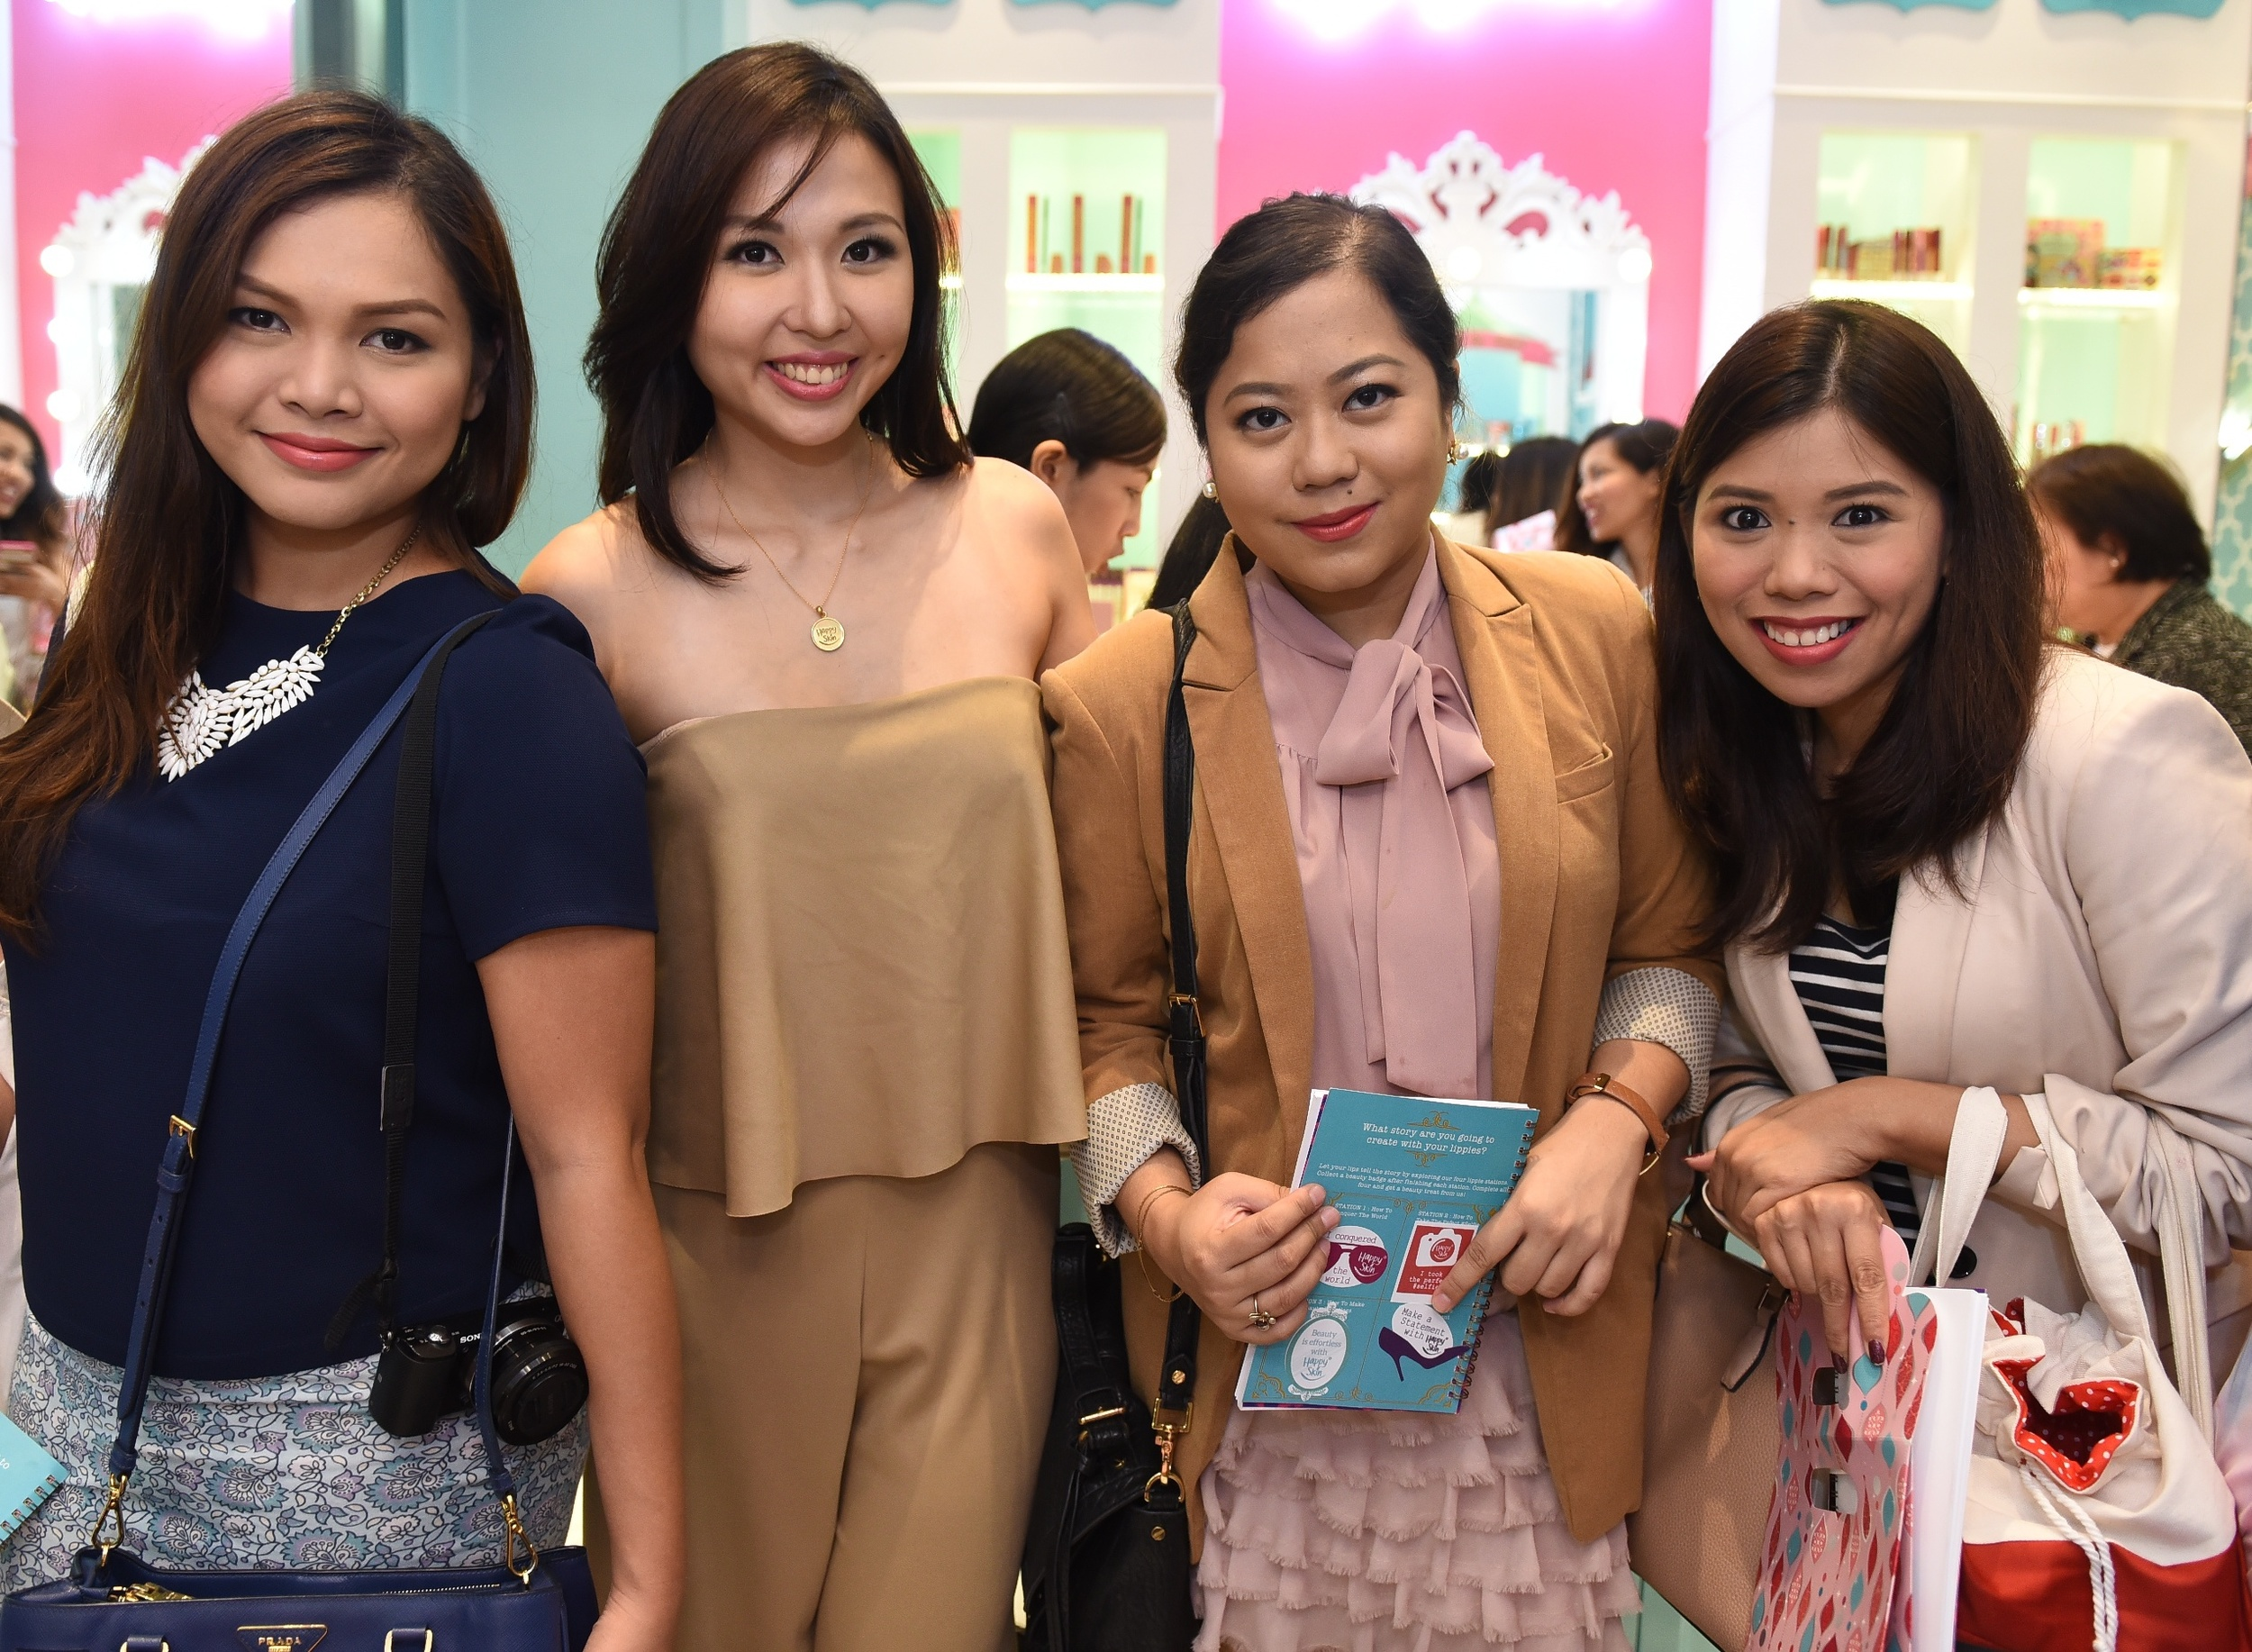 I got to visit with my fave bloggers Martha and Donna, with Happy Skin co-founder Jacqe Yuengtian-Gutierrez